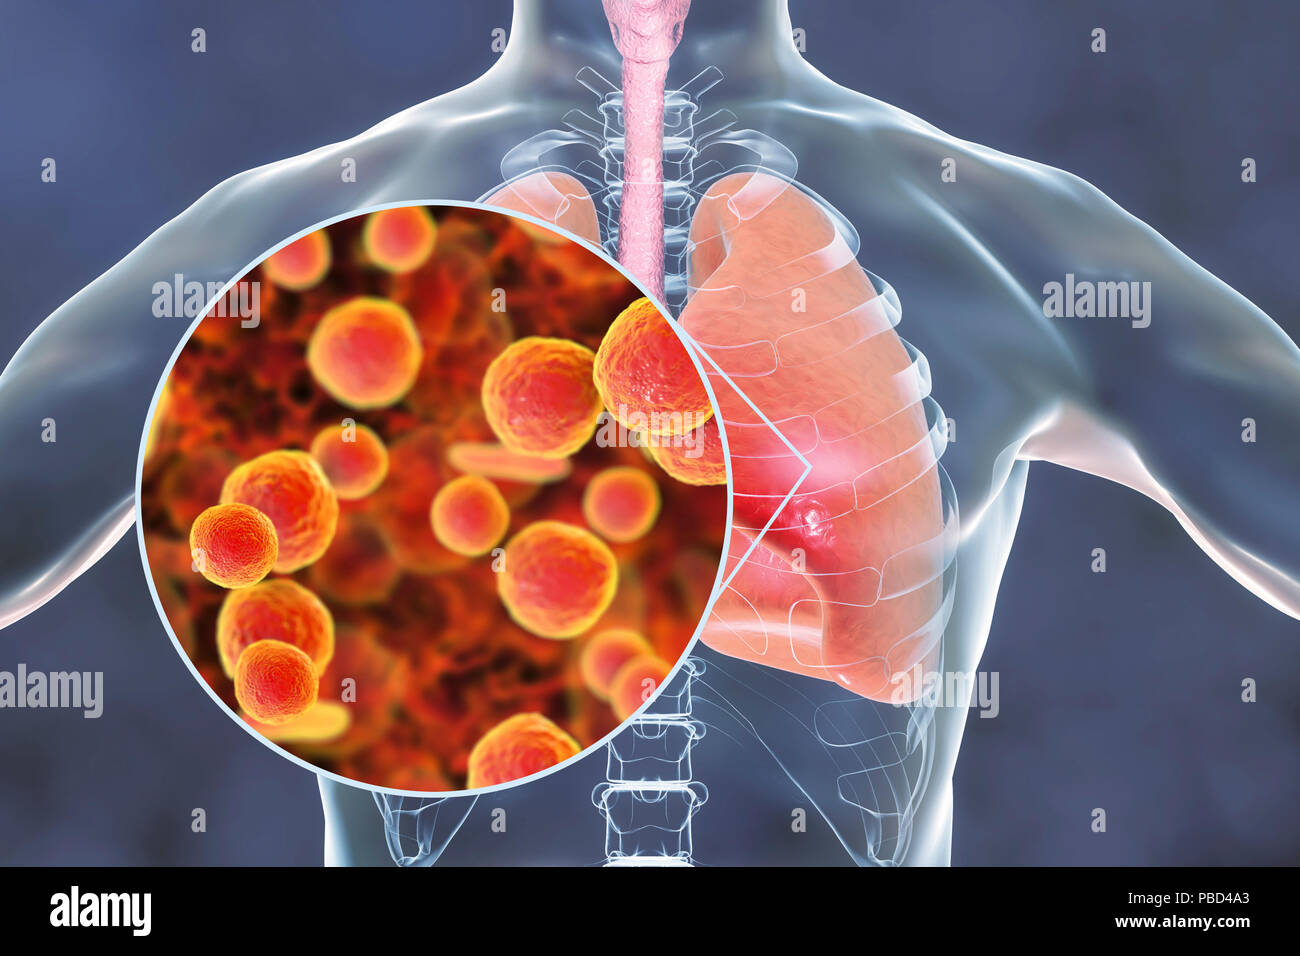 Pneumonia caused by Mycoplasma pneumoniae bacteria, conceptual computer illustration. - Stock Image